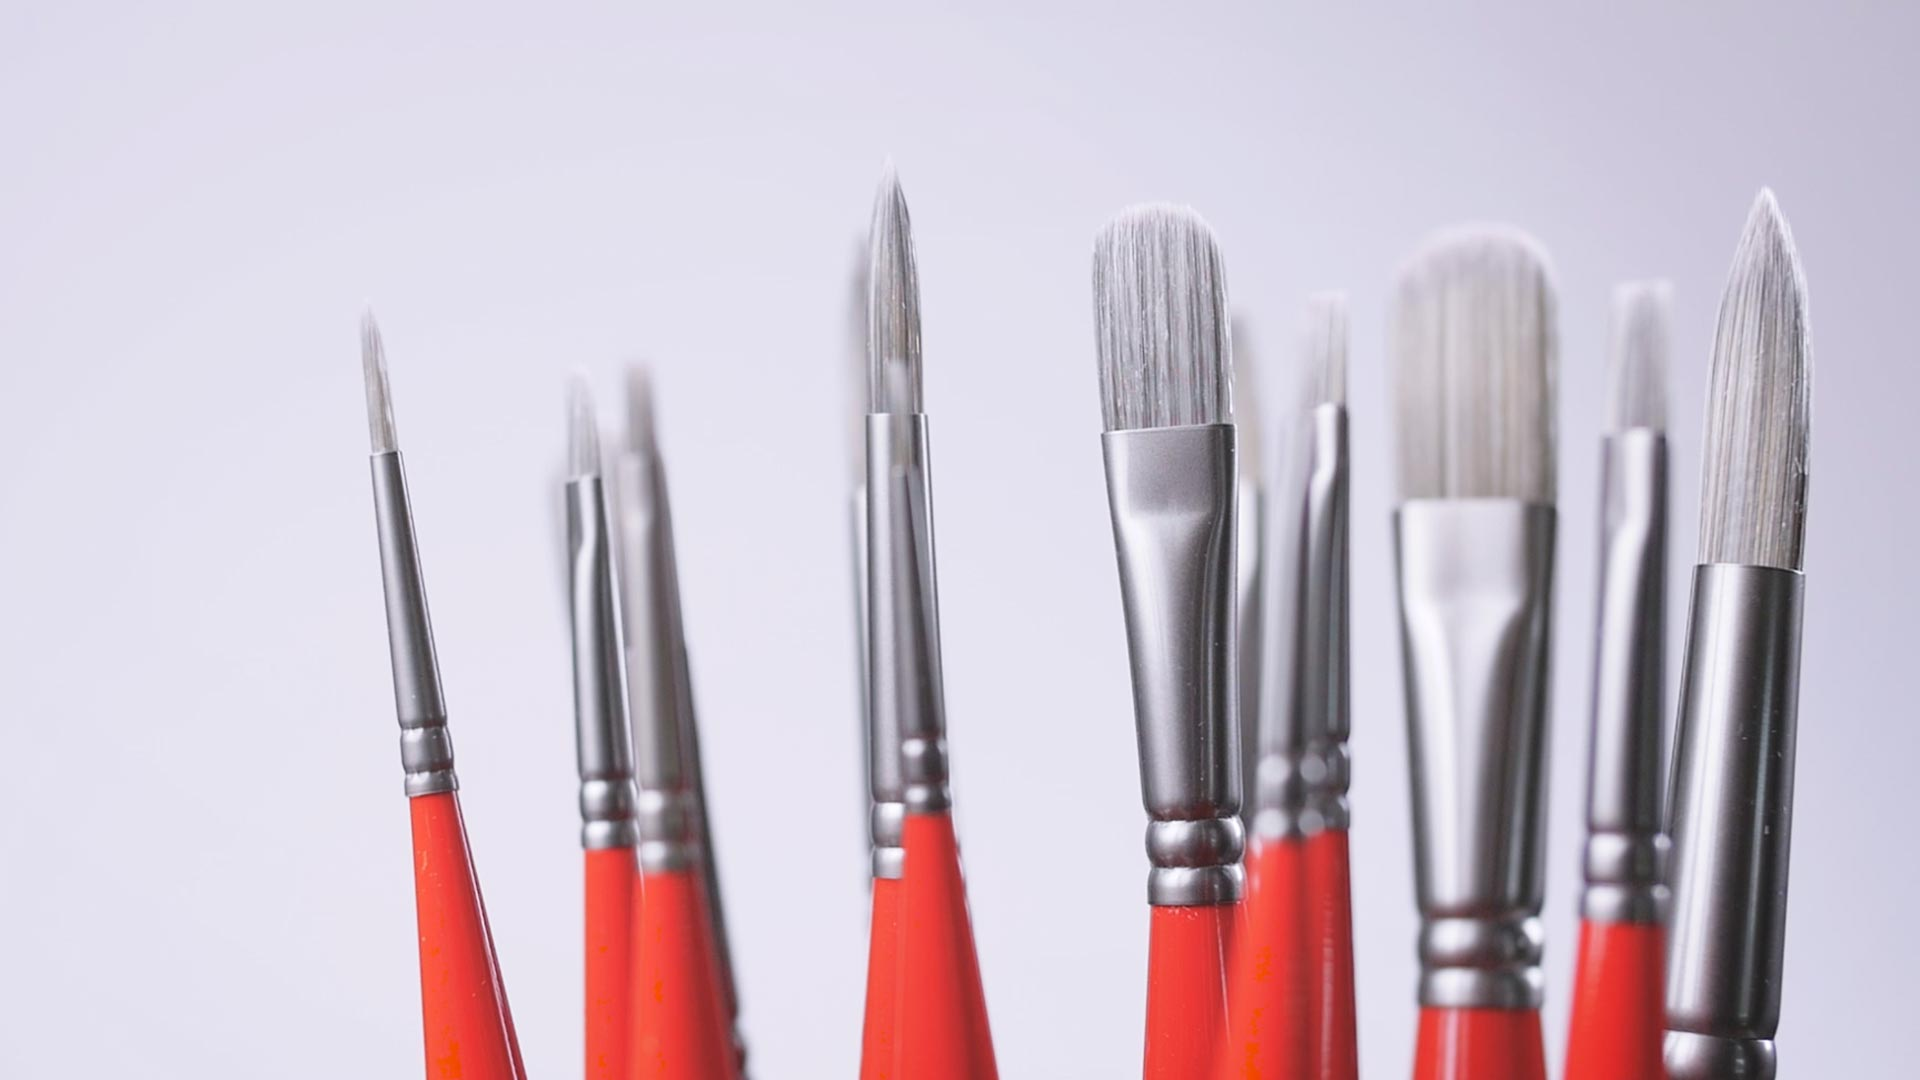 Silver UNICO Paintbrush Series by Borciani Bonazzi